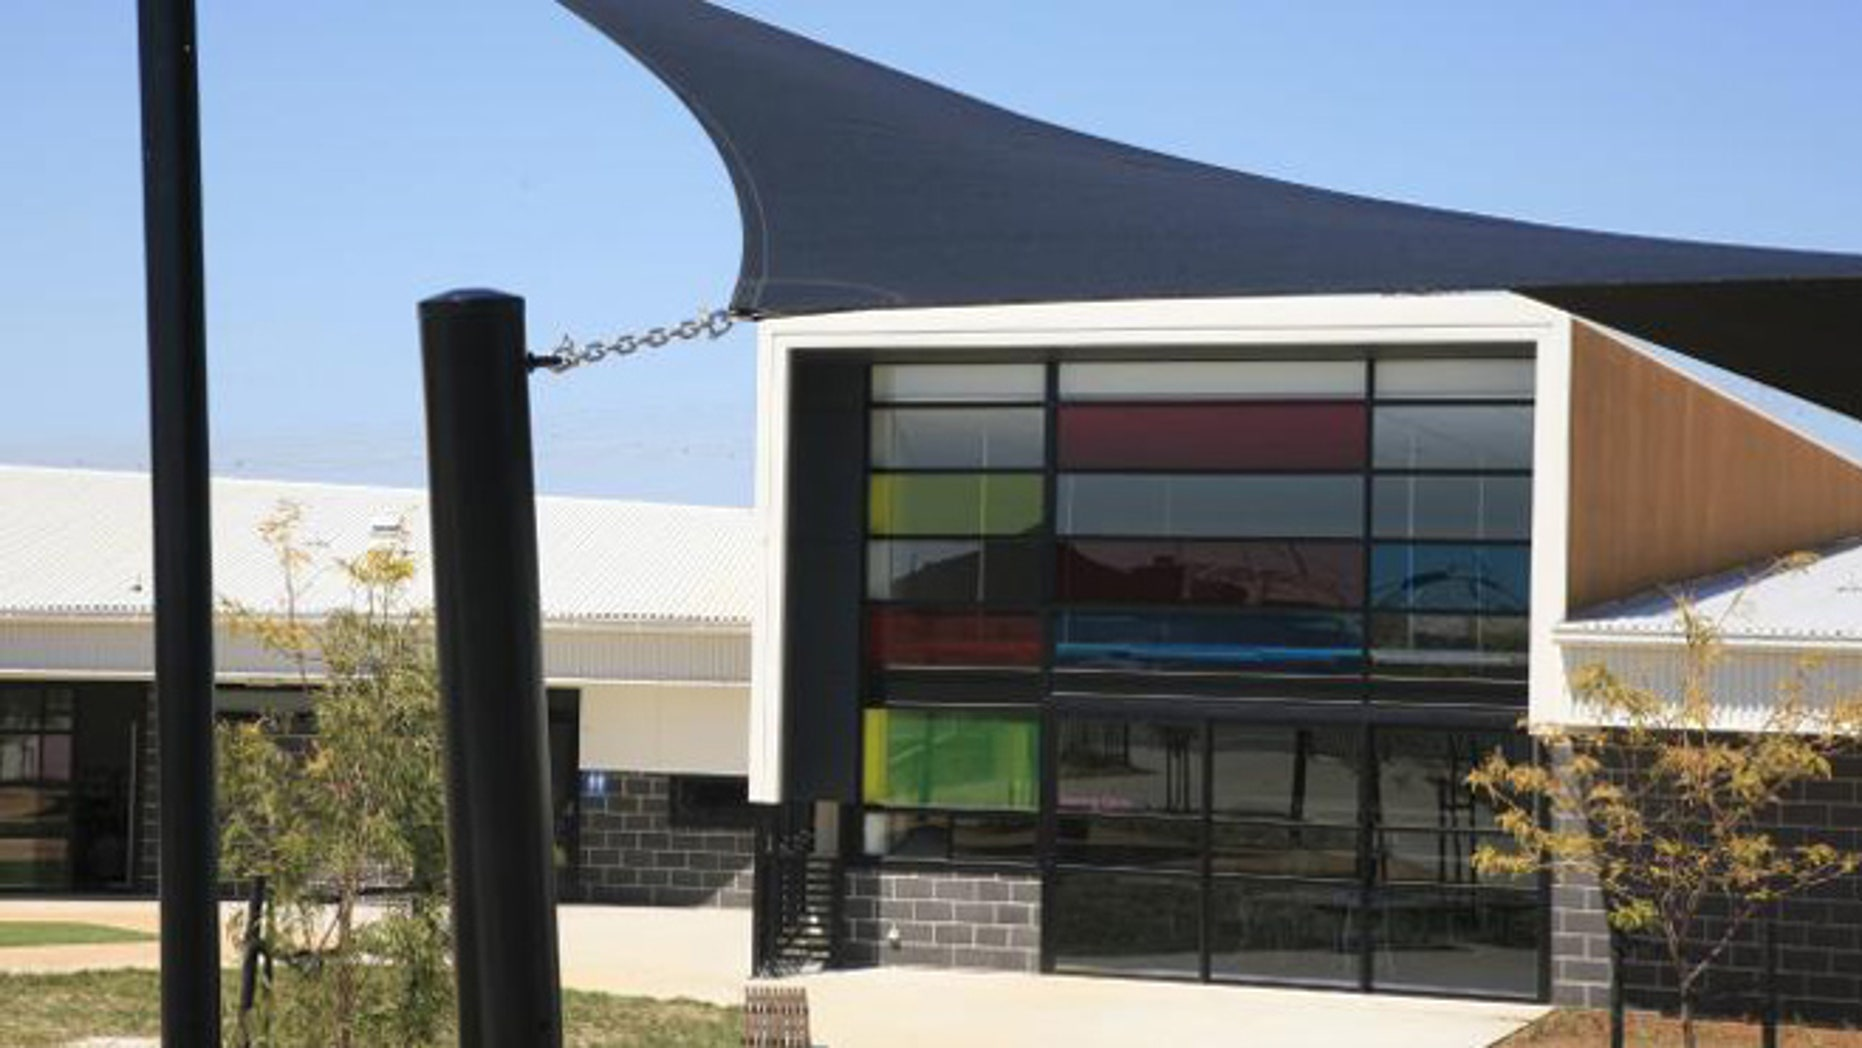 Cranbourne Carlisle Primary School in Australia.